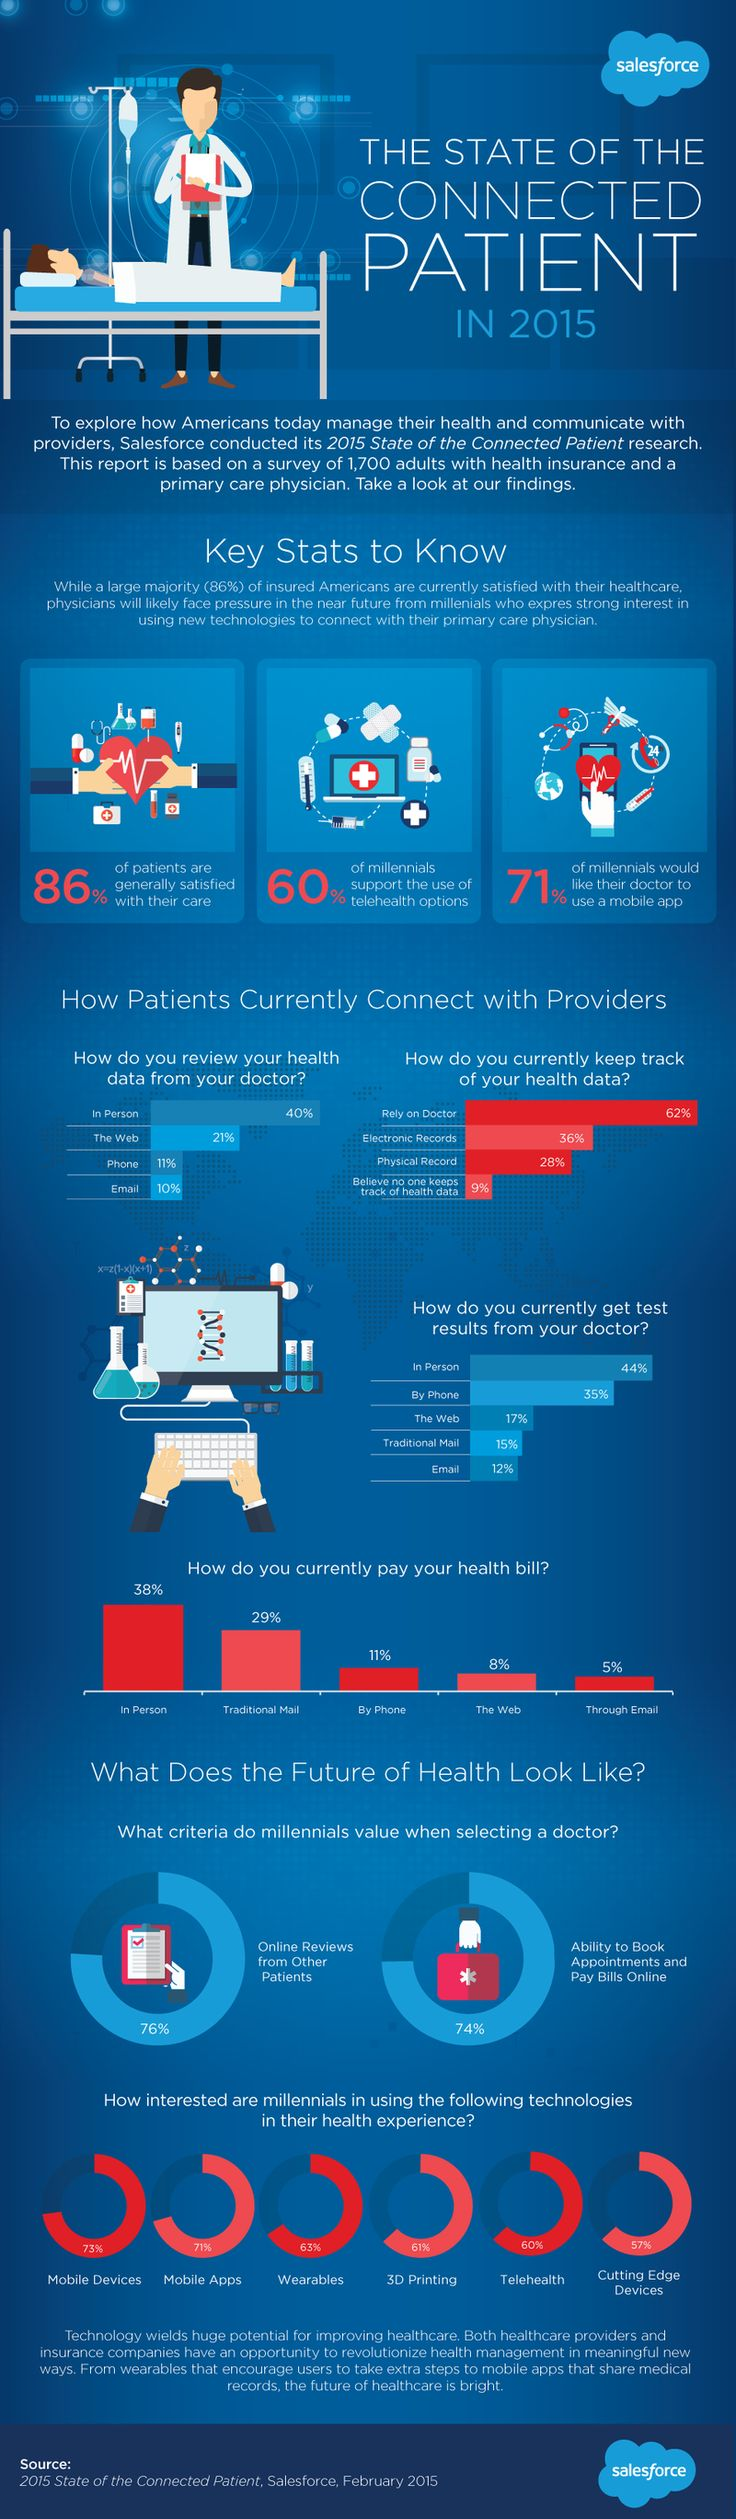 The State of the Connected Patient 2015 #infographic #Health #Healthcare